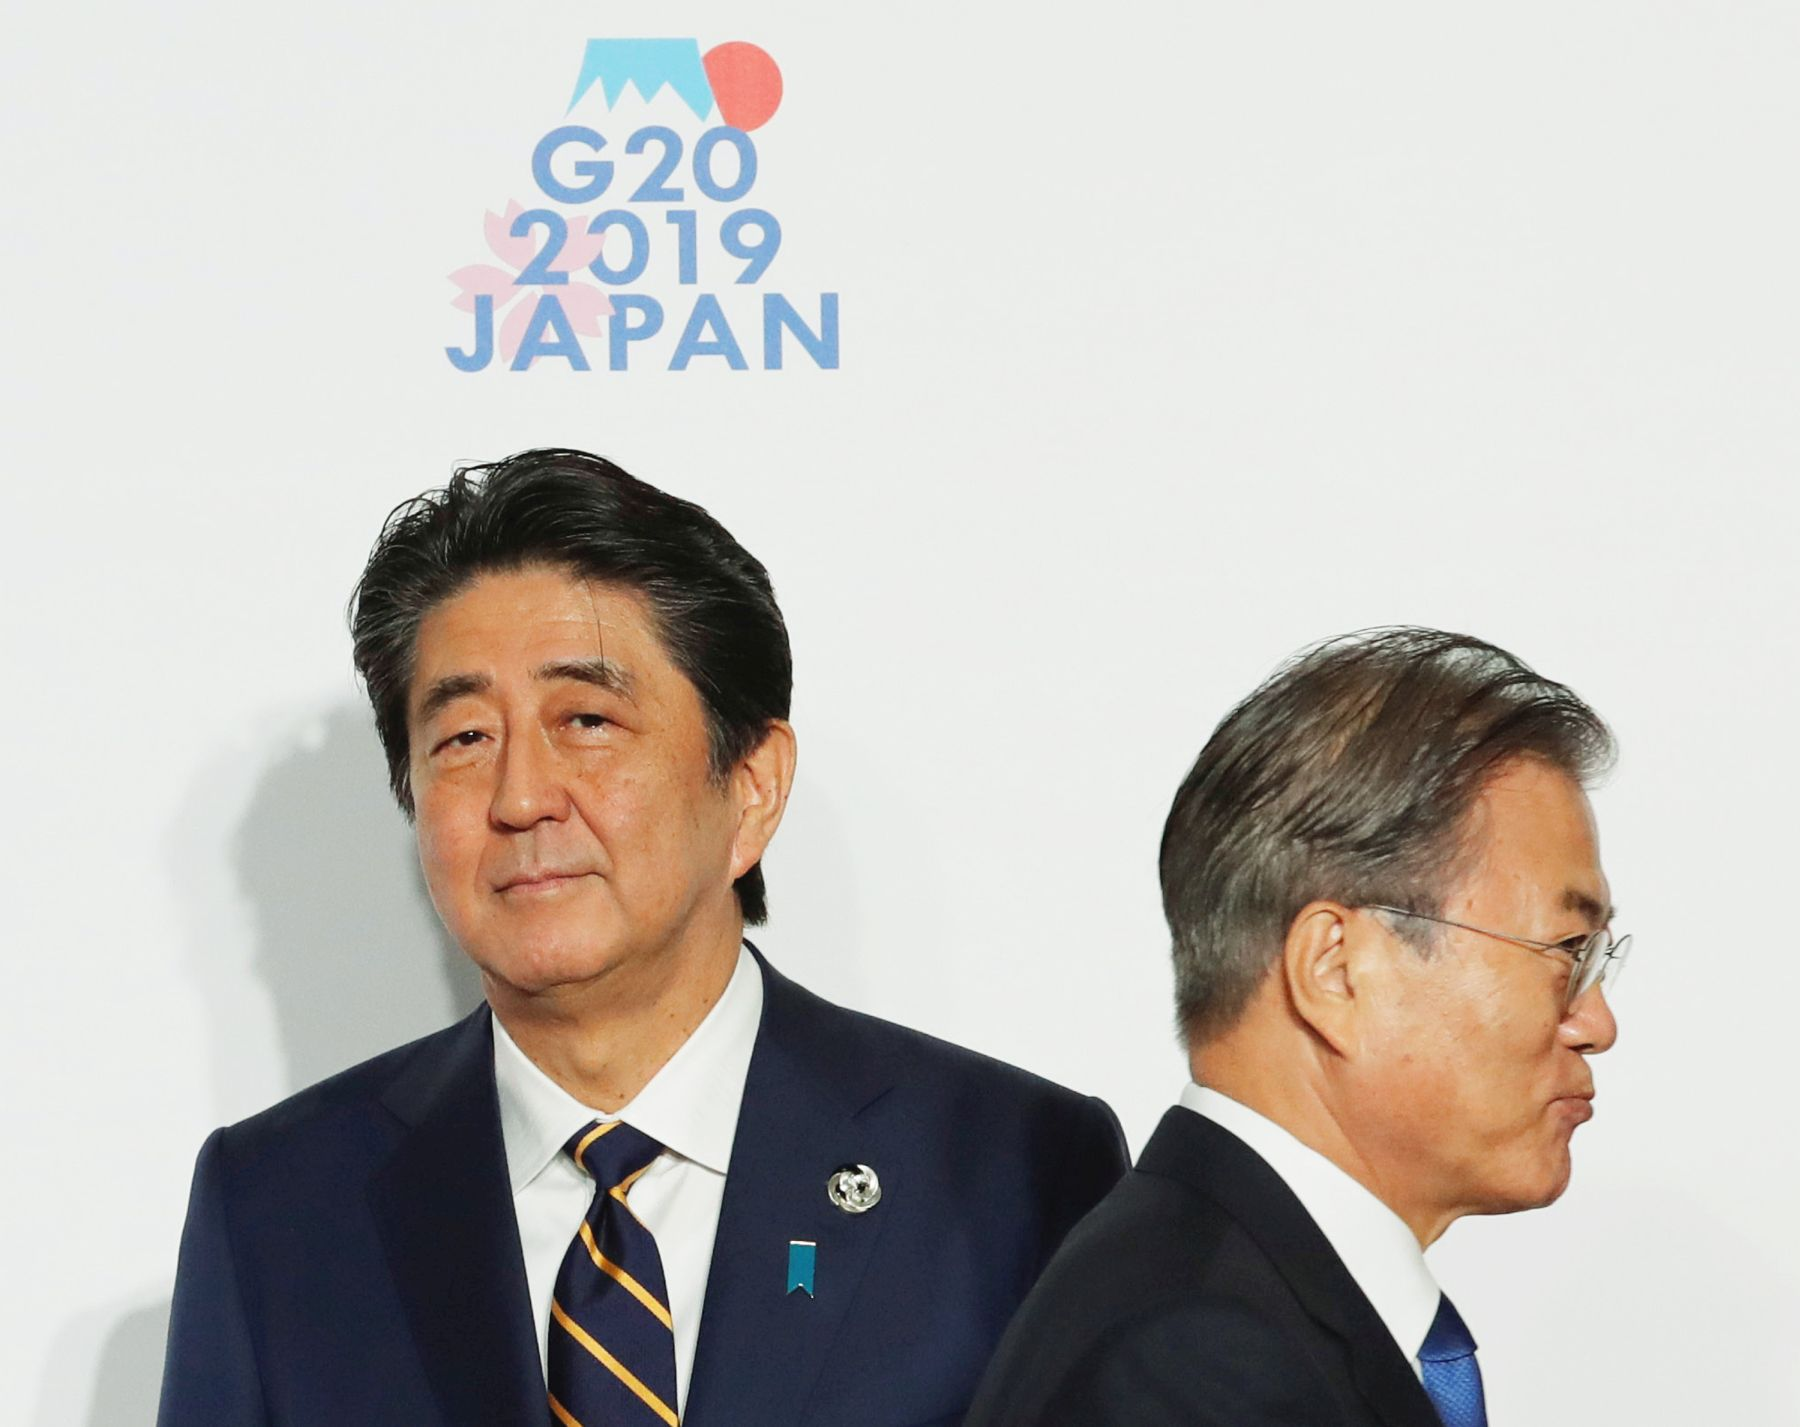 South Korean President Moon Jae-In is welcomed by Japanese Prime Minister Shinzo Abe upon his arrival for a welcome and family photo session at G20 leaders summit in Osak